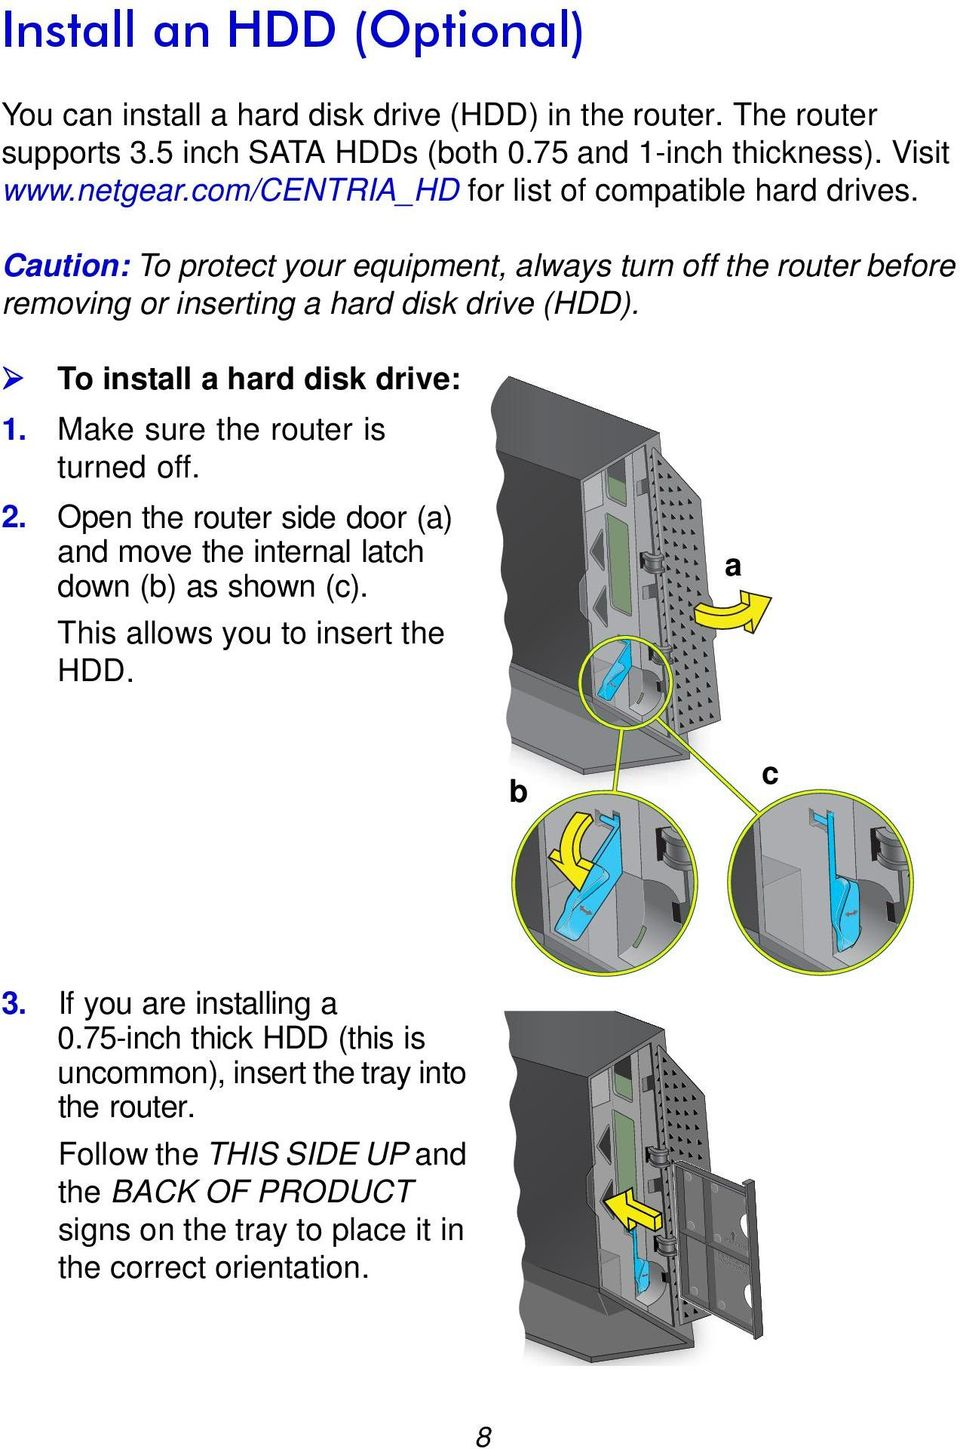 To install a hard disk drive: 1. Make sure the router is turned off. 2. Open the router side door (a) and move the internal latch down (b) as shown (c).